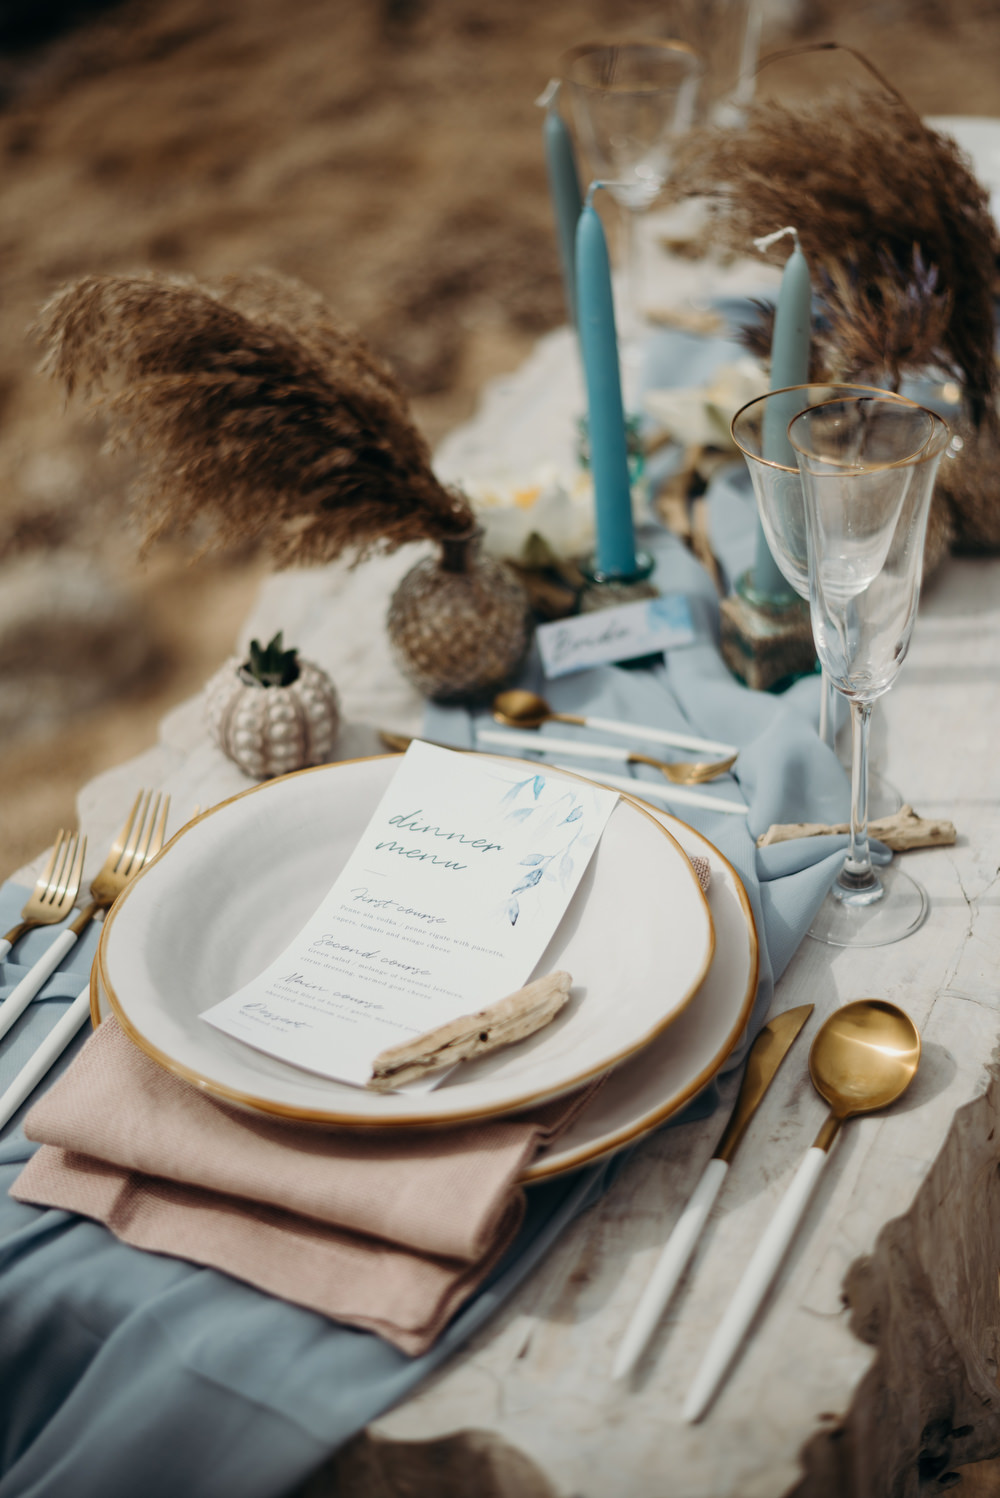 Outdoor Wild Nature Destination Spain Europe Coastal Styled Shoot Beach Table Elegant Styling Menu Candles Cutlery | Blue Ibiza Elopement Ideas and Surprise Proposal Serena Genovese Photography